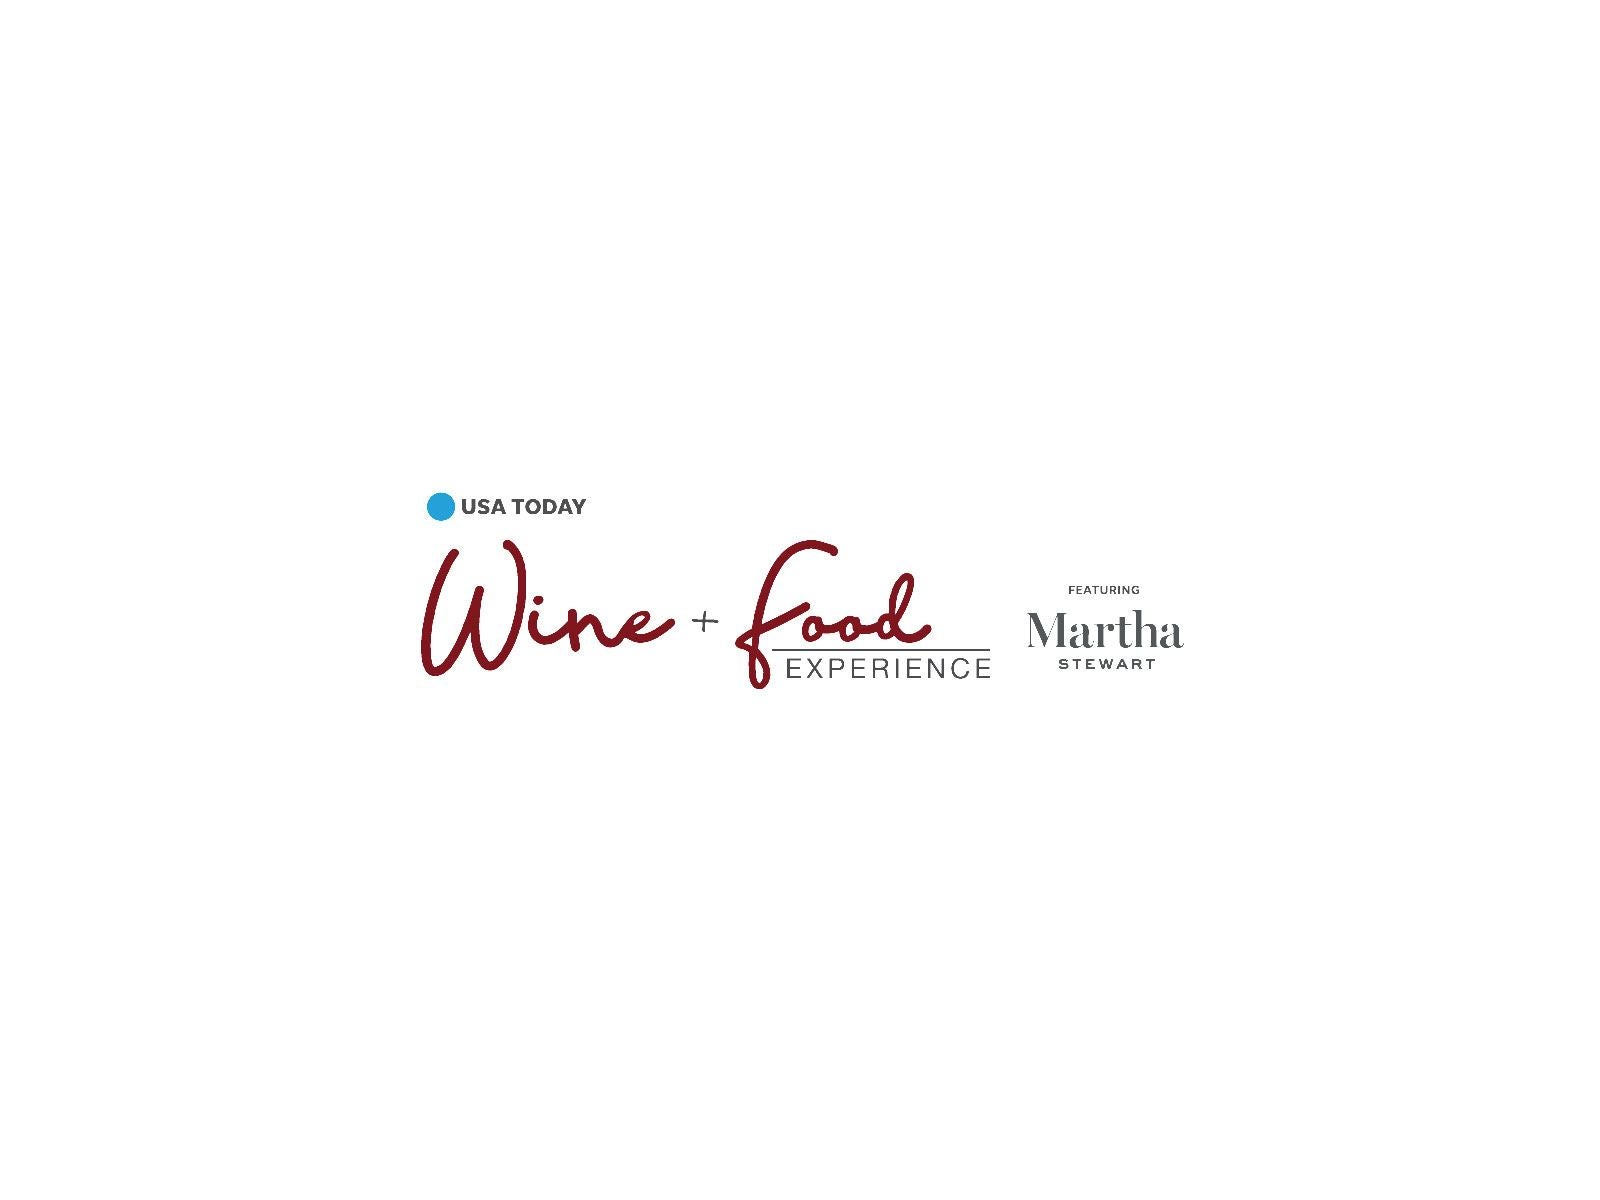 Main image for event titled USA TODAY Wine & Food Experience